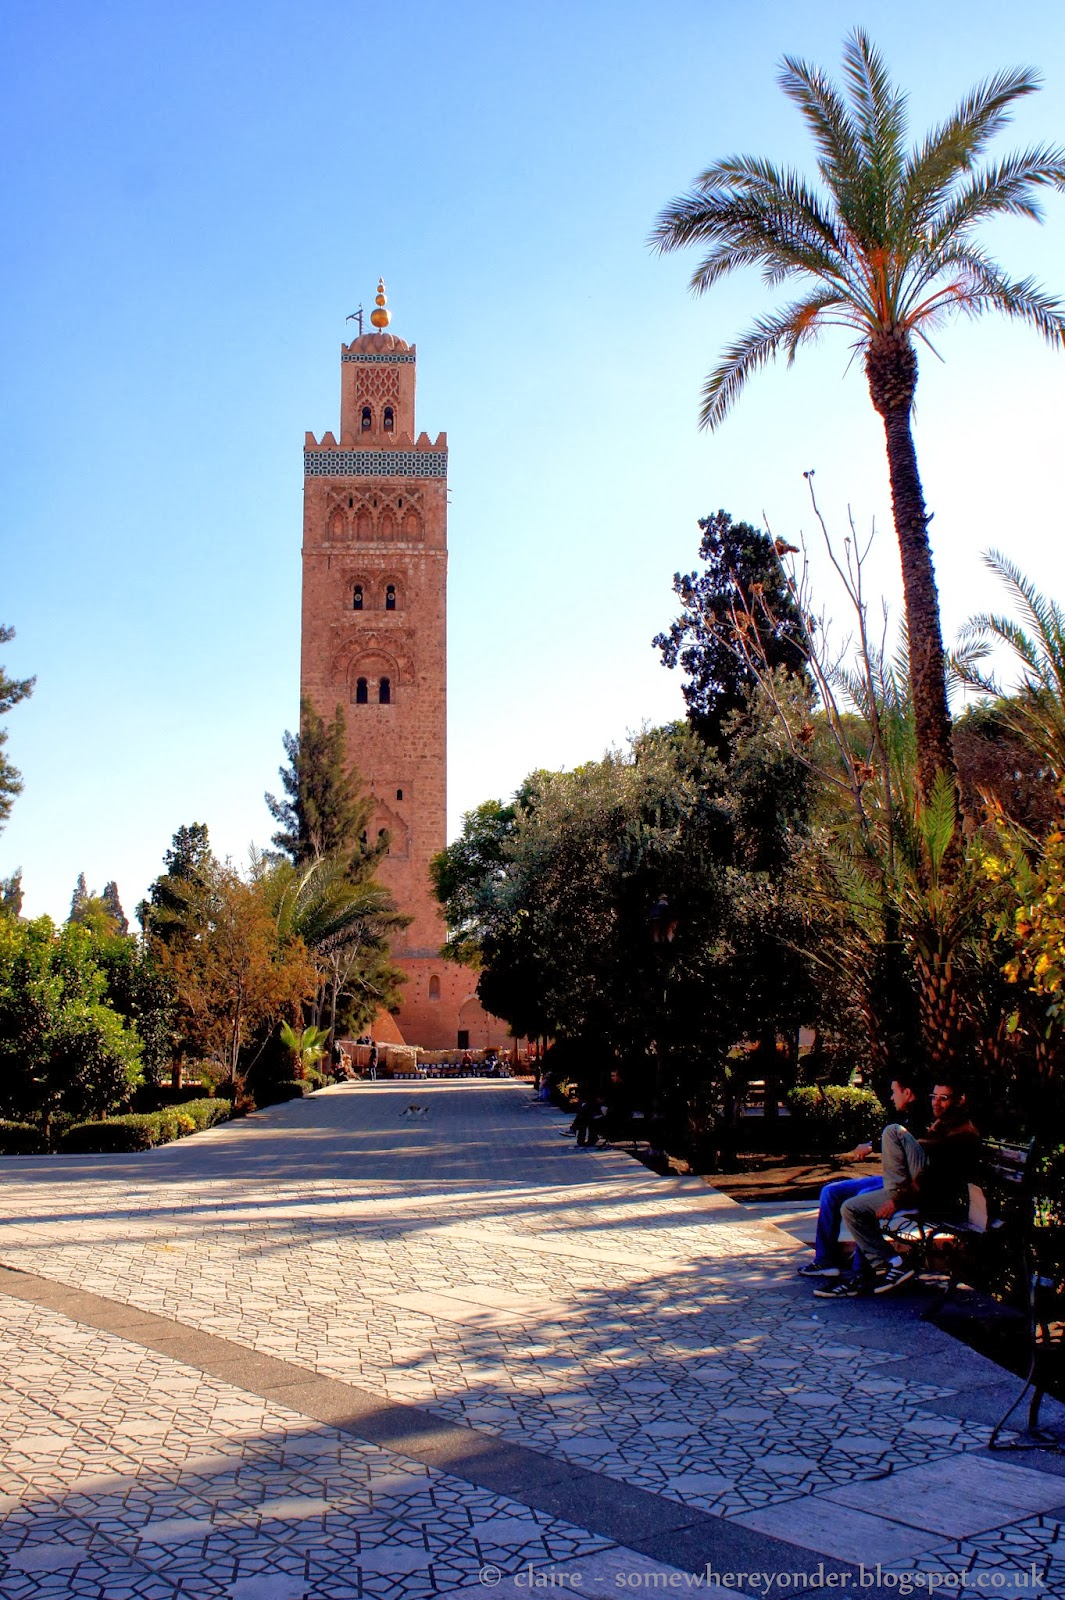 Koutoubia Mosque - Marrakech